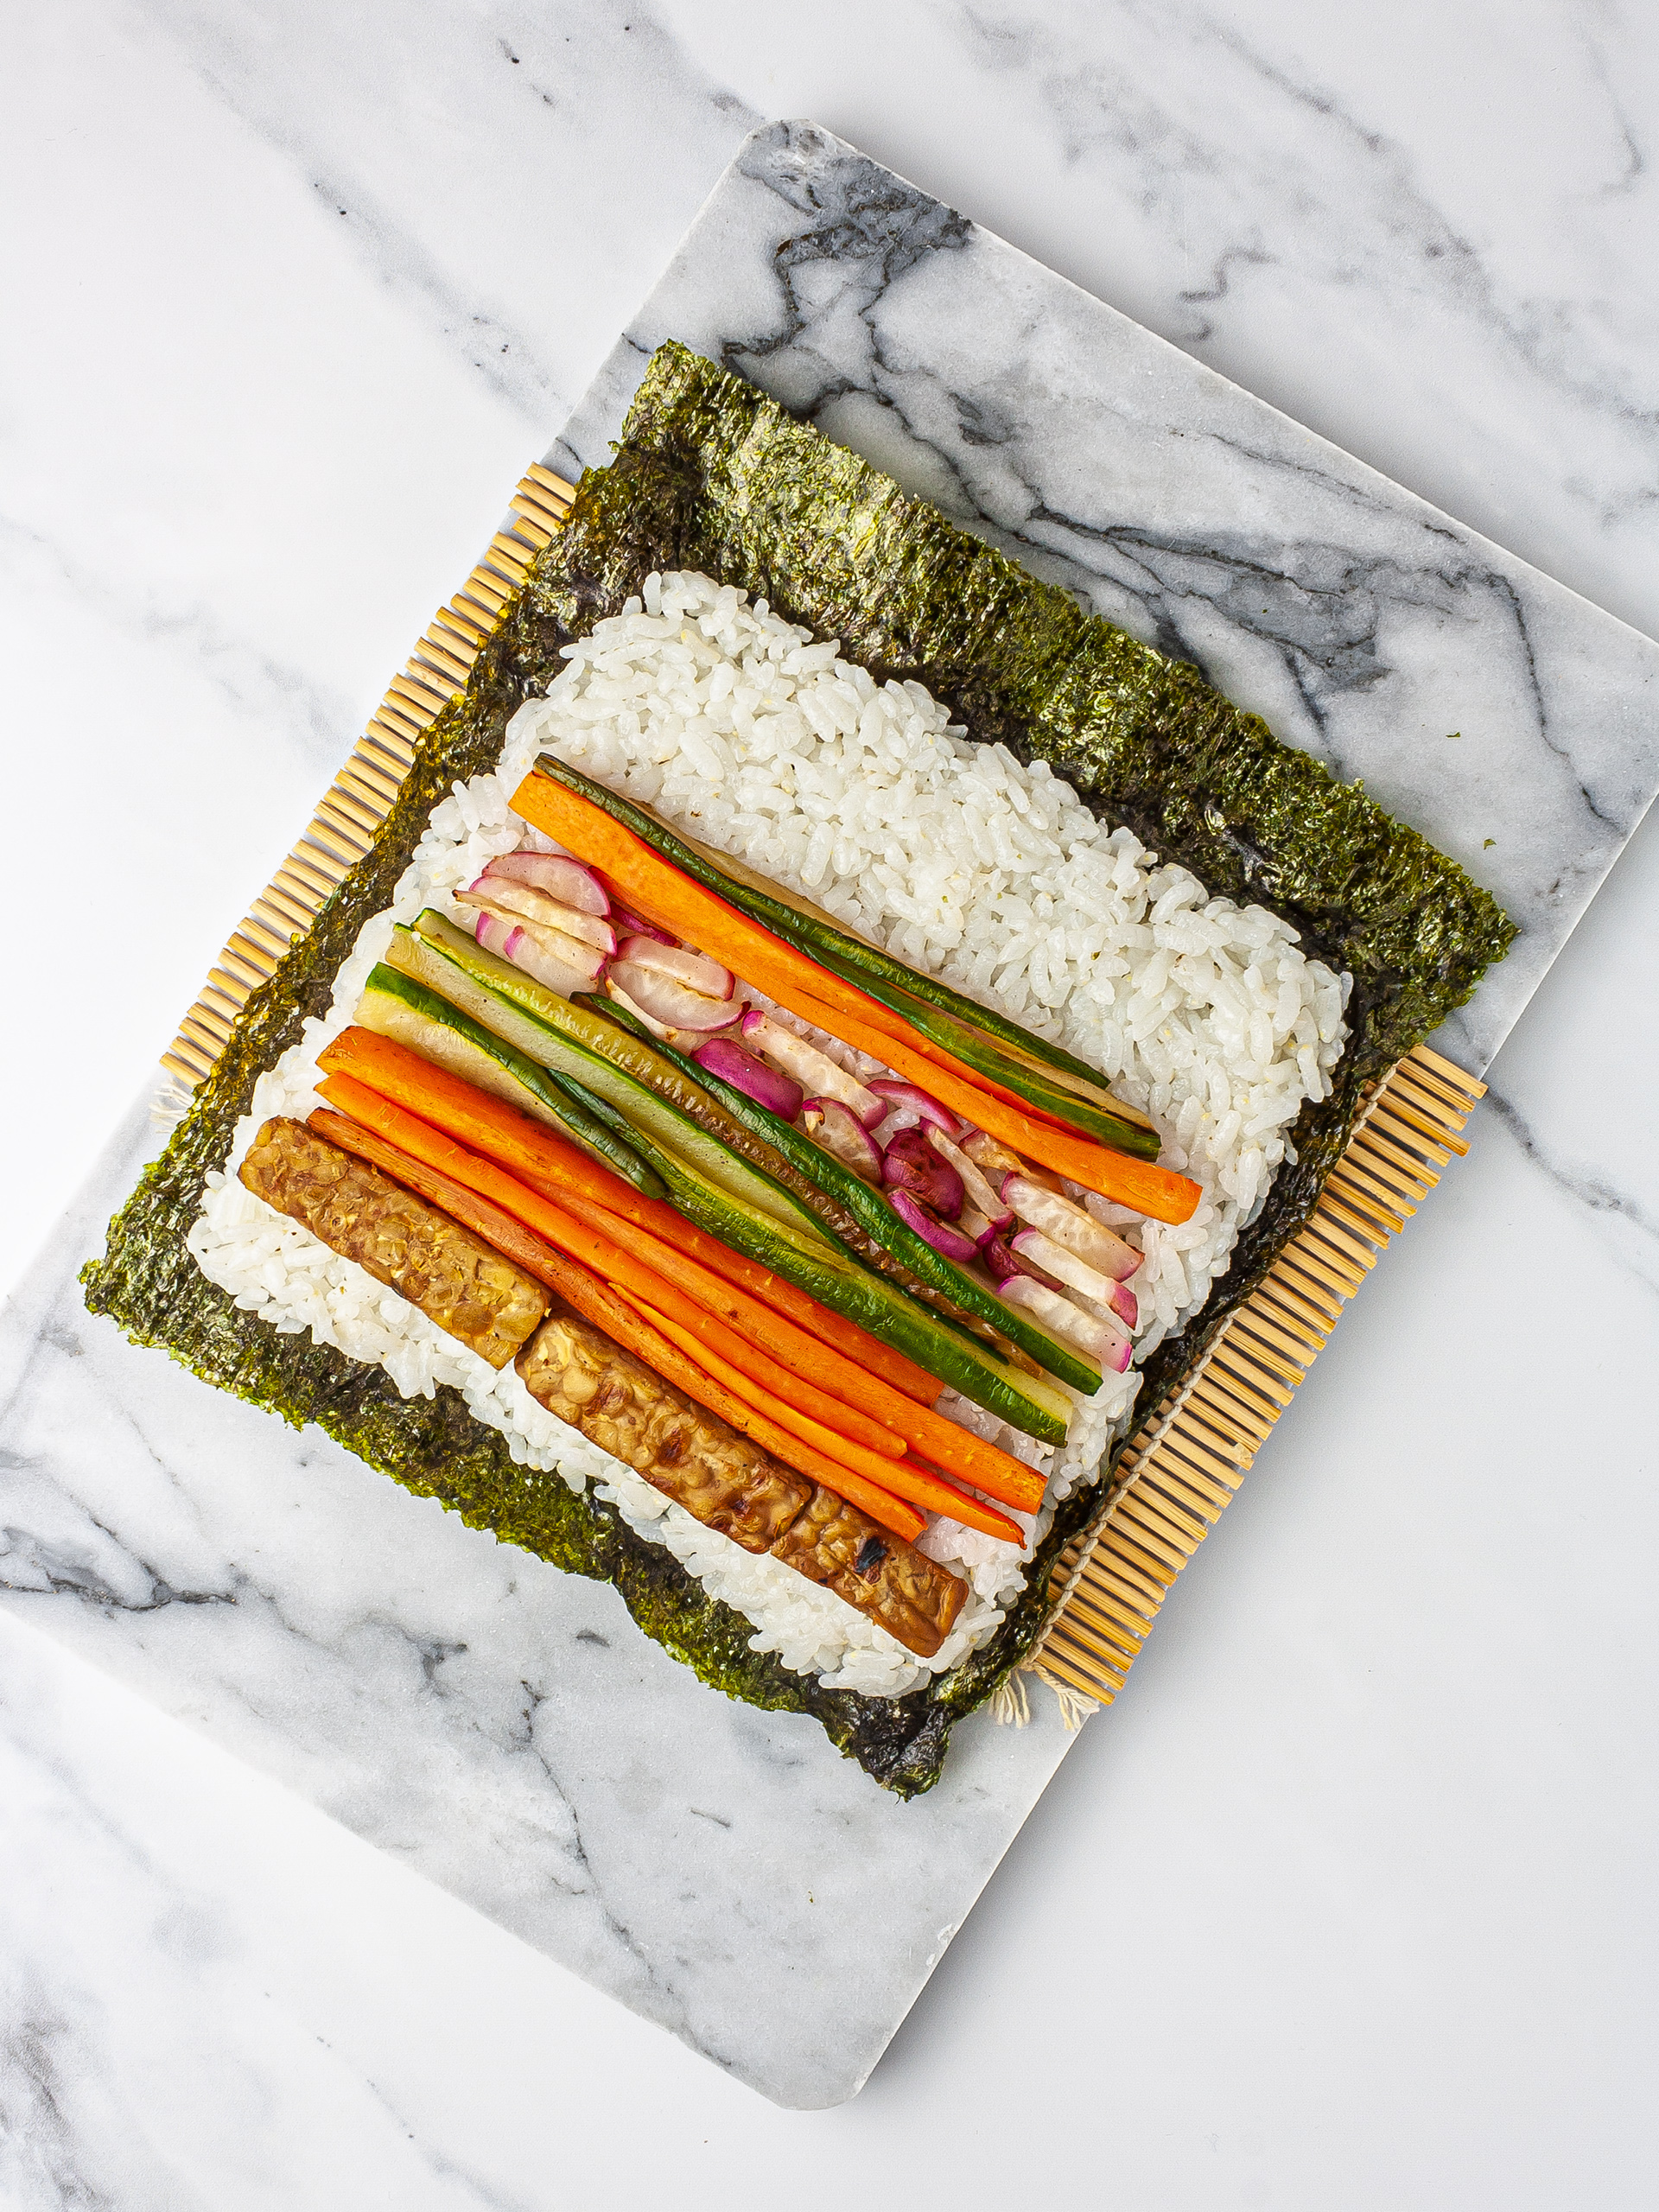 Nori sheet with sushi rice, vegetables, and tempeh on a sushi mat.